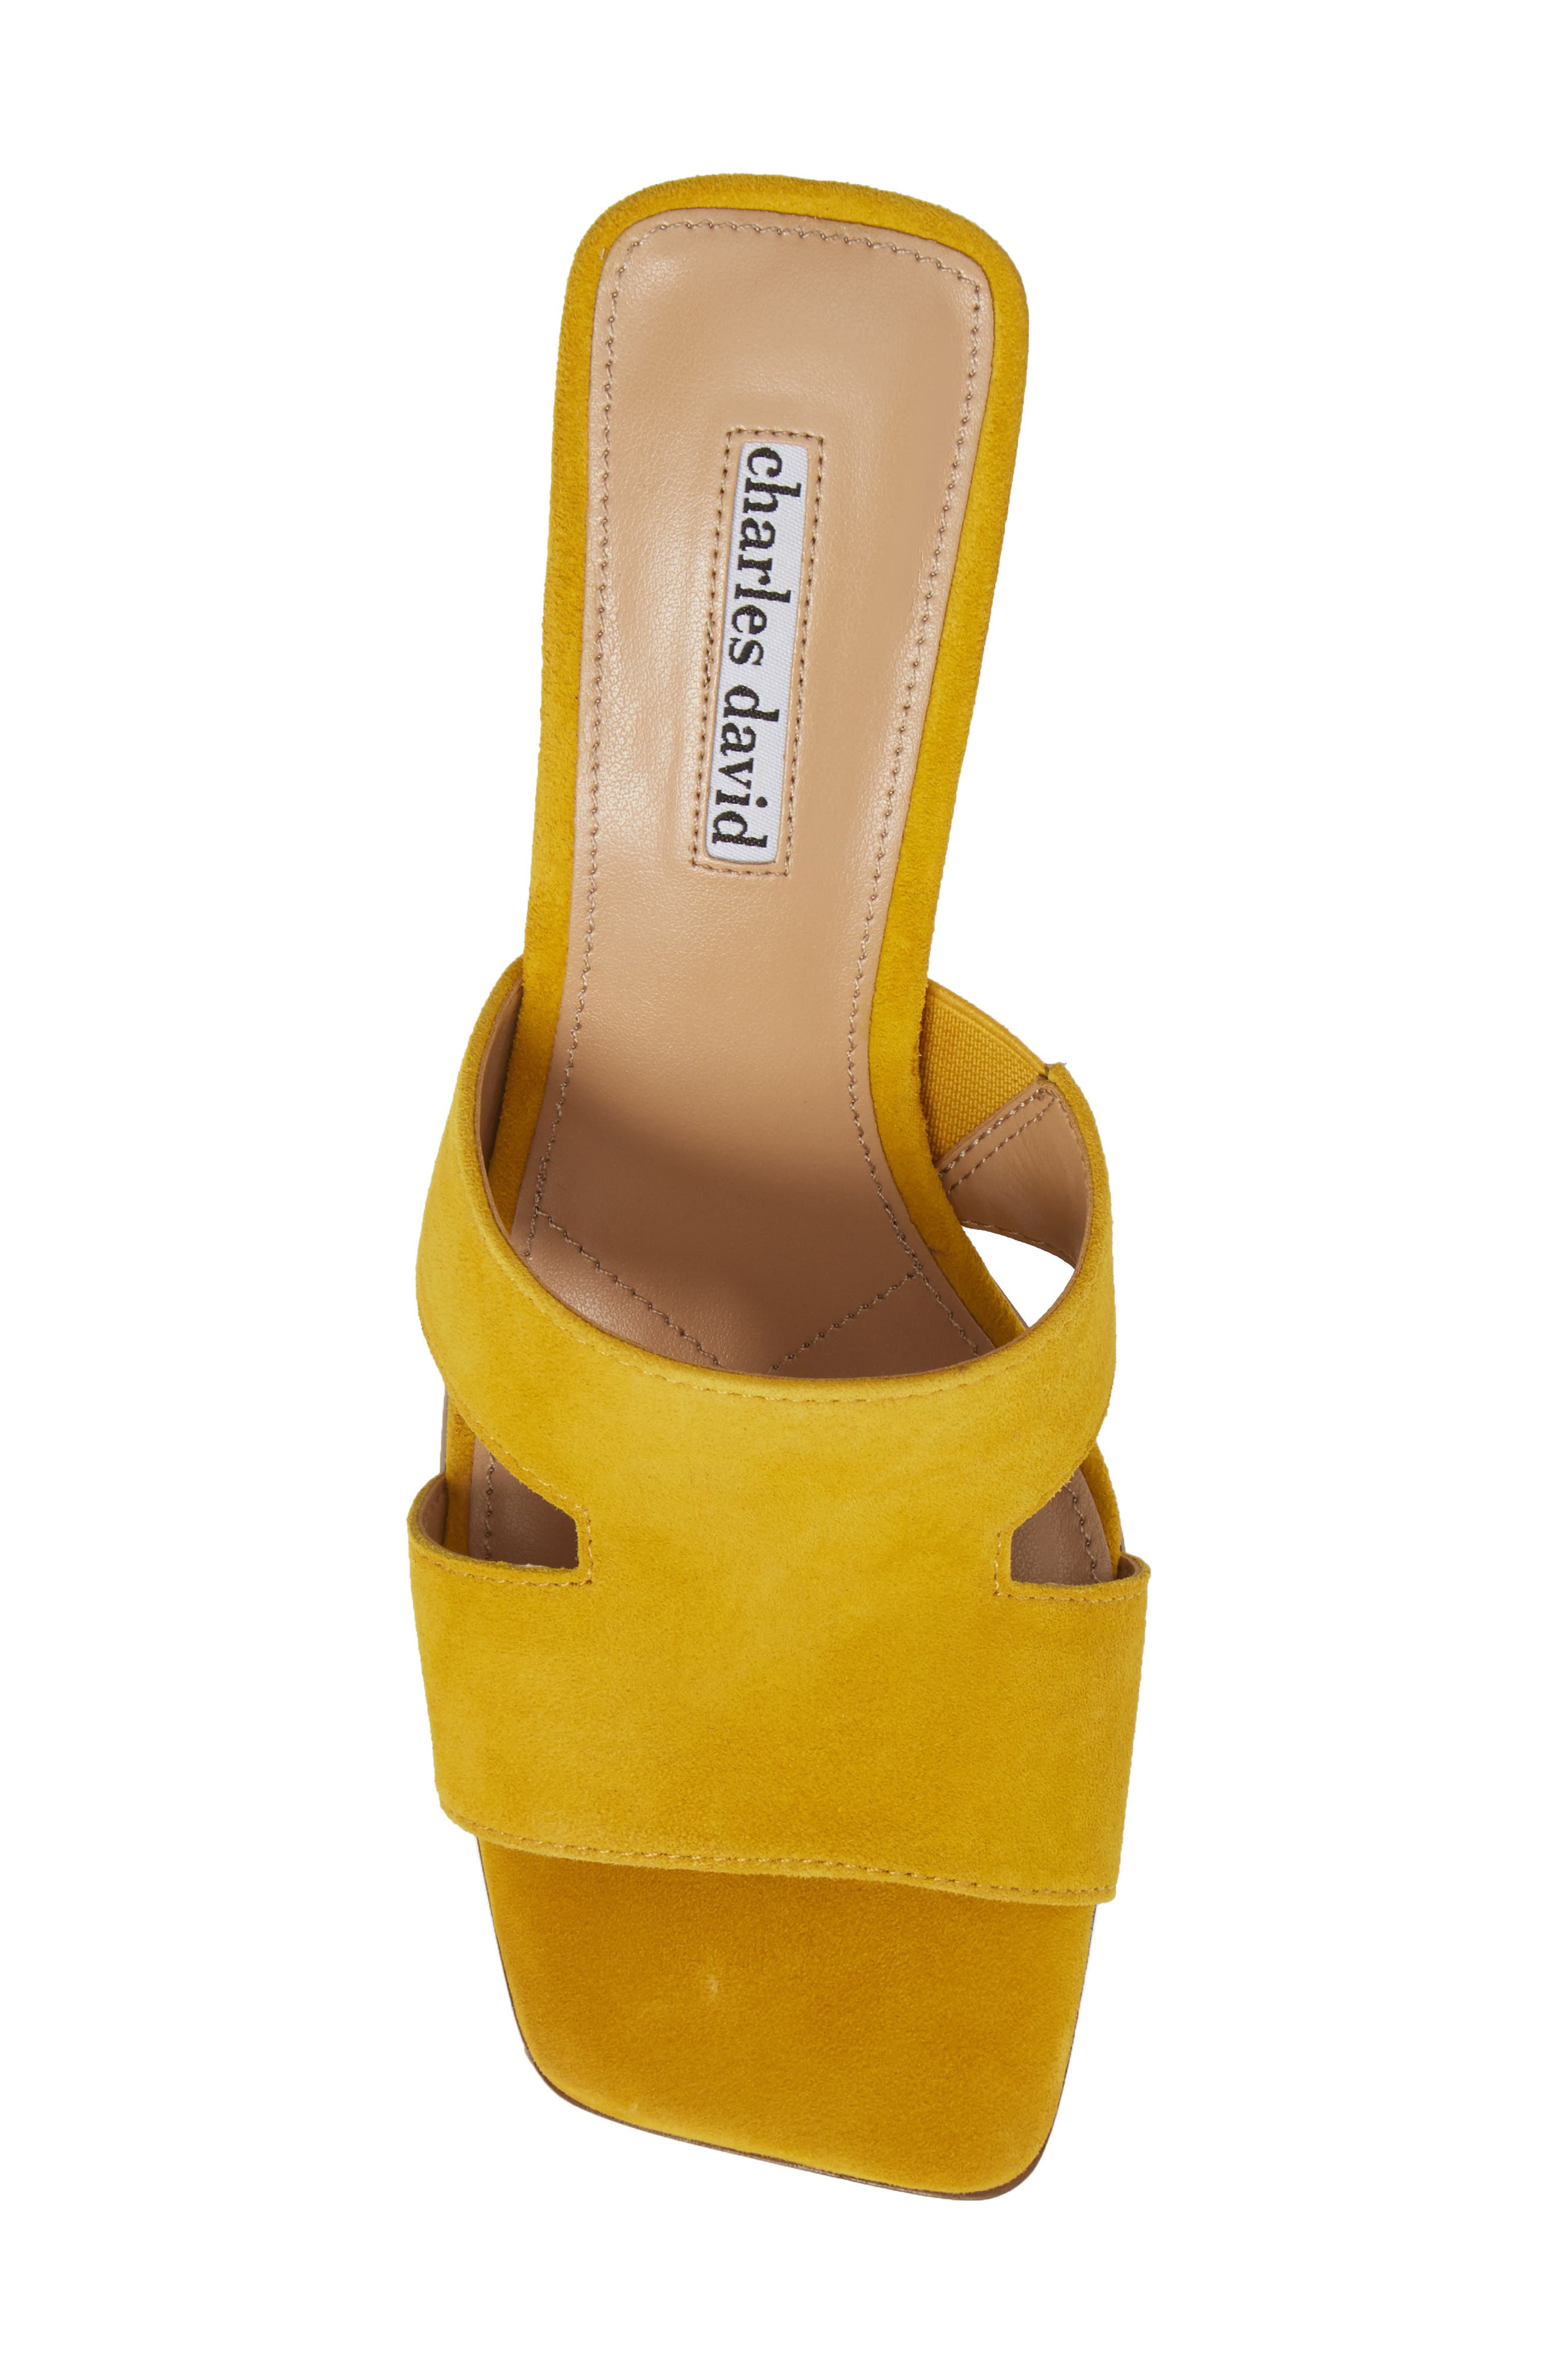 Harley Slide Sandal,                             Alternate thumbnail 5, color,                             Bright Yellow Suede